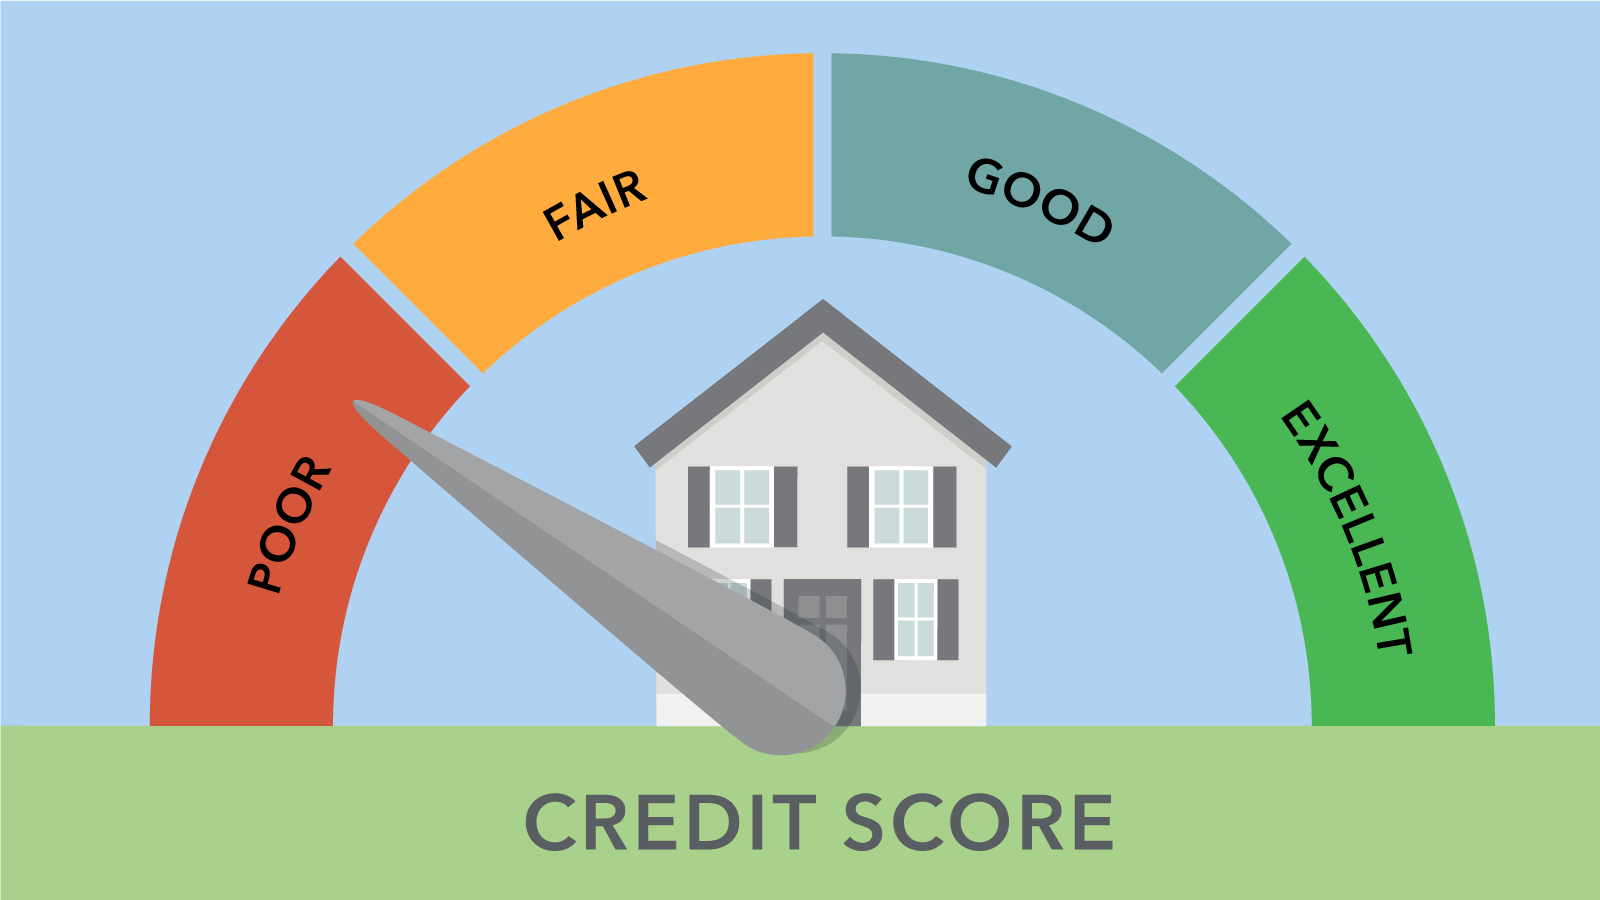 this is a credit score for a modular home